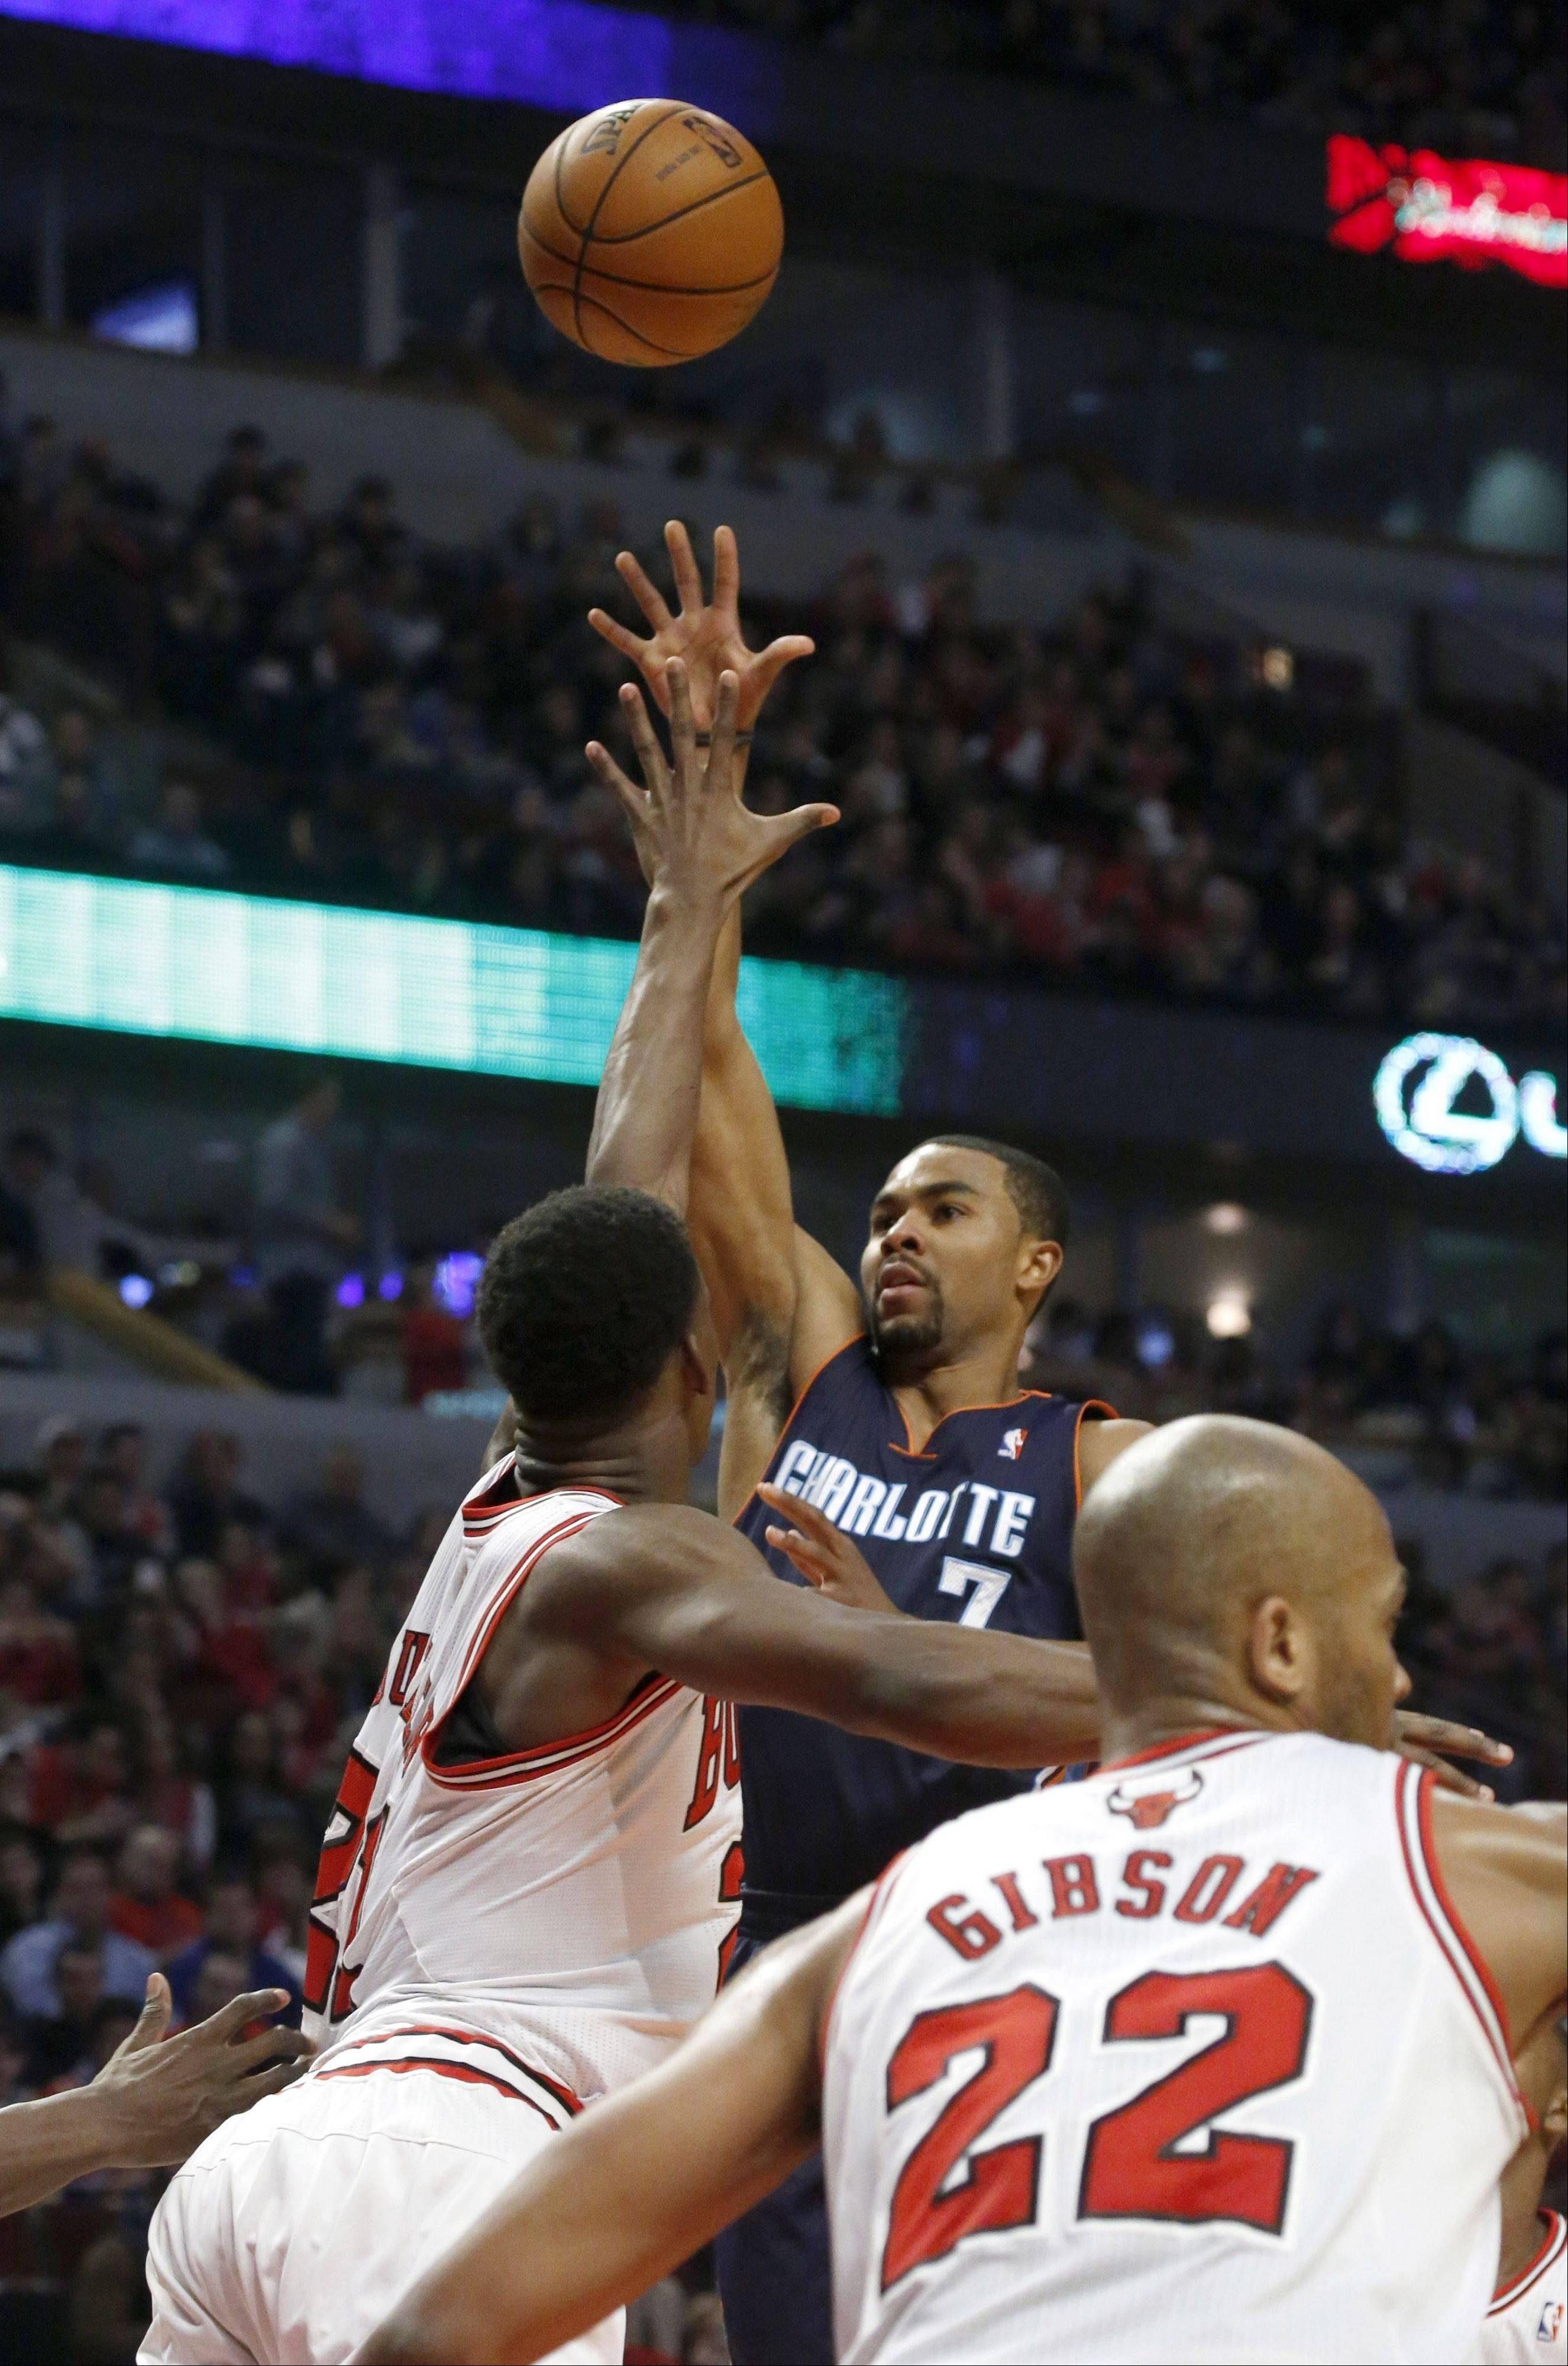 Ramon Sessions, center, shoots over Chicago Bulls' Jimmy Butler (21) and Taj Gibson during the first half of an NBA basketball game Monday, Dec. 31, 2012, in Chicago.